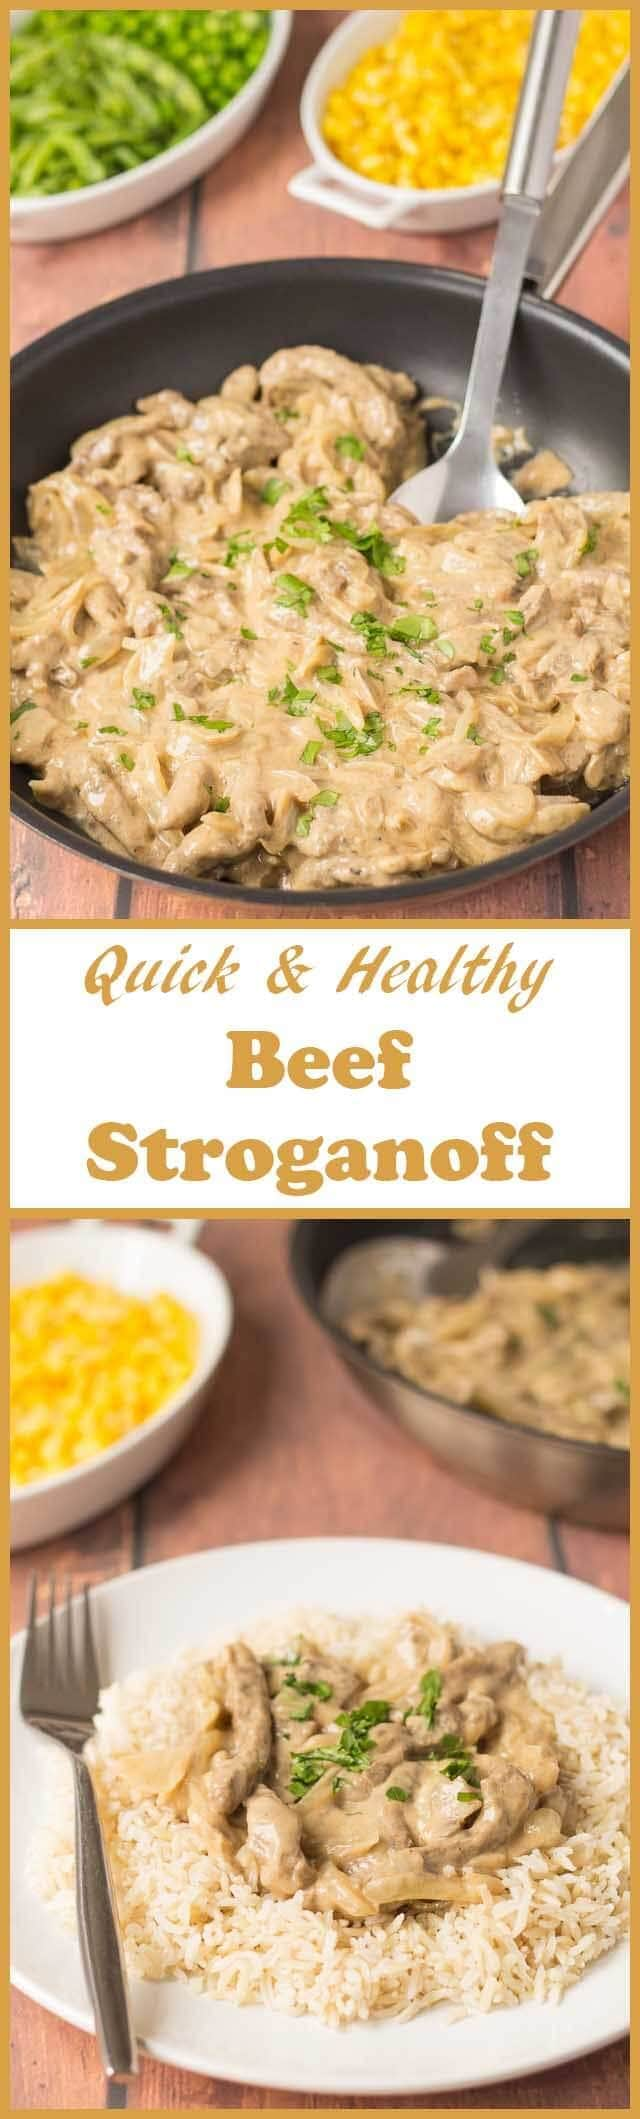 Quick healthy beef stroganoff is an easy cheats version of the classic hearty meal made to suit the whole family. This delicious creamy tasting recipe will fully satisfy those hungry mouths!